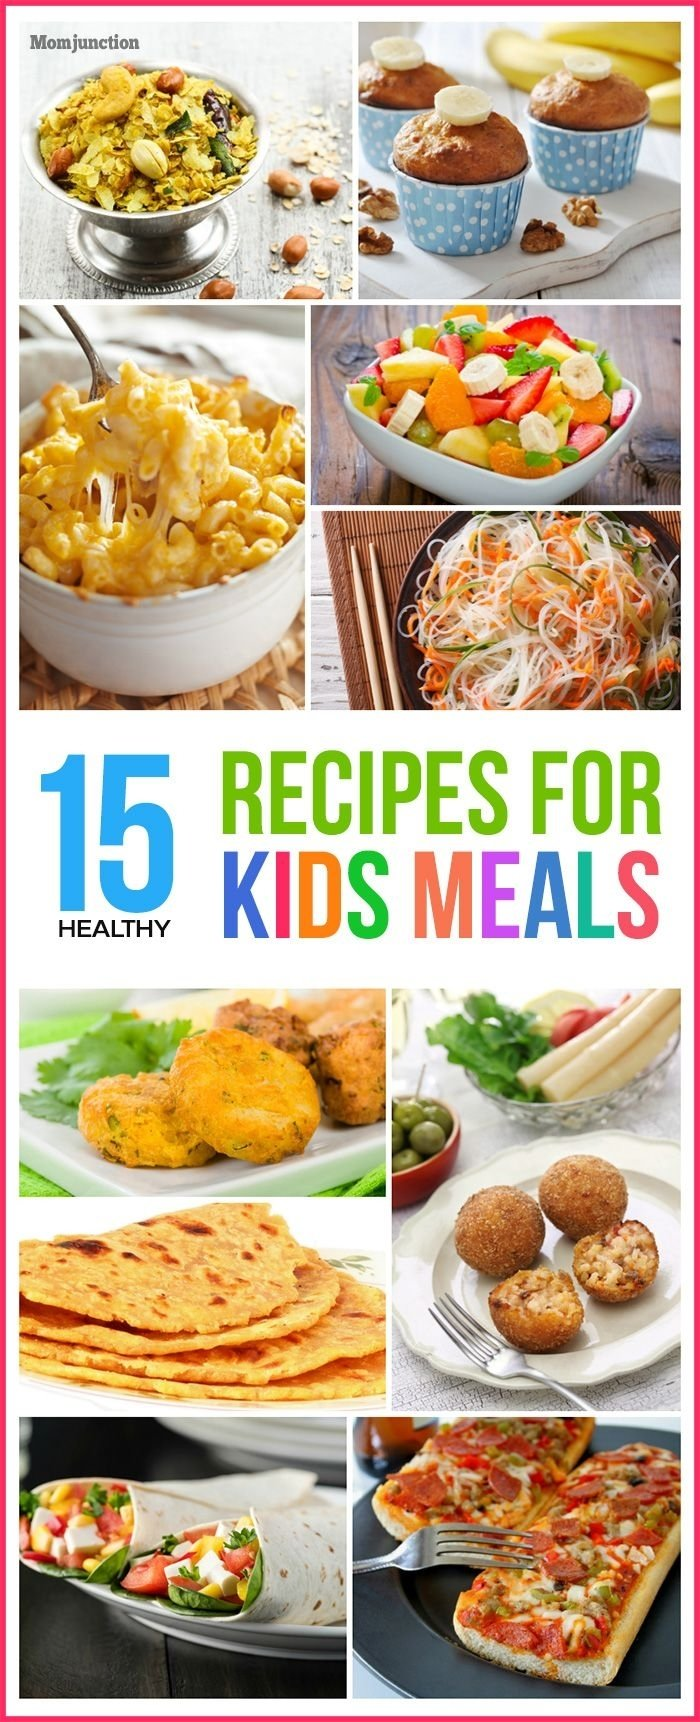 805 best healthy food for kids dinner images on pinterest | cooking